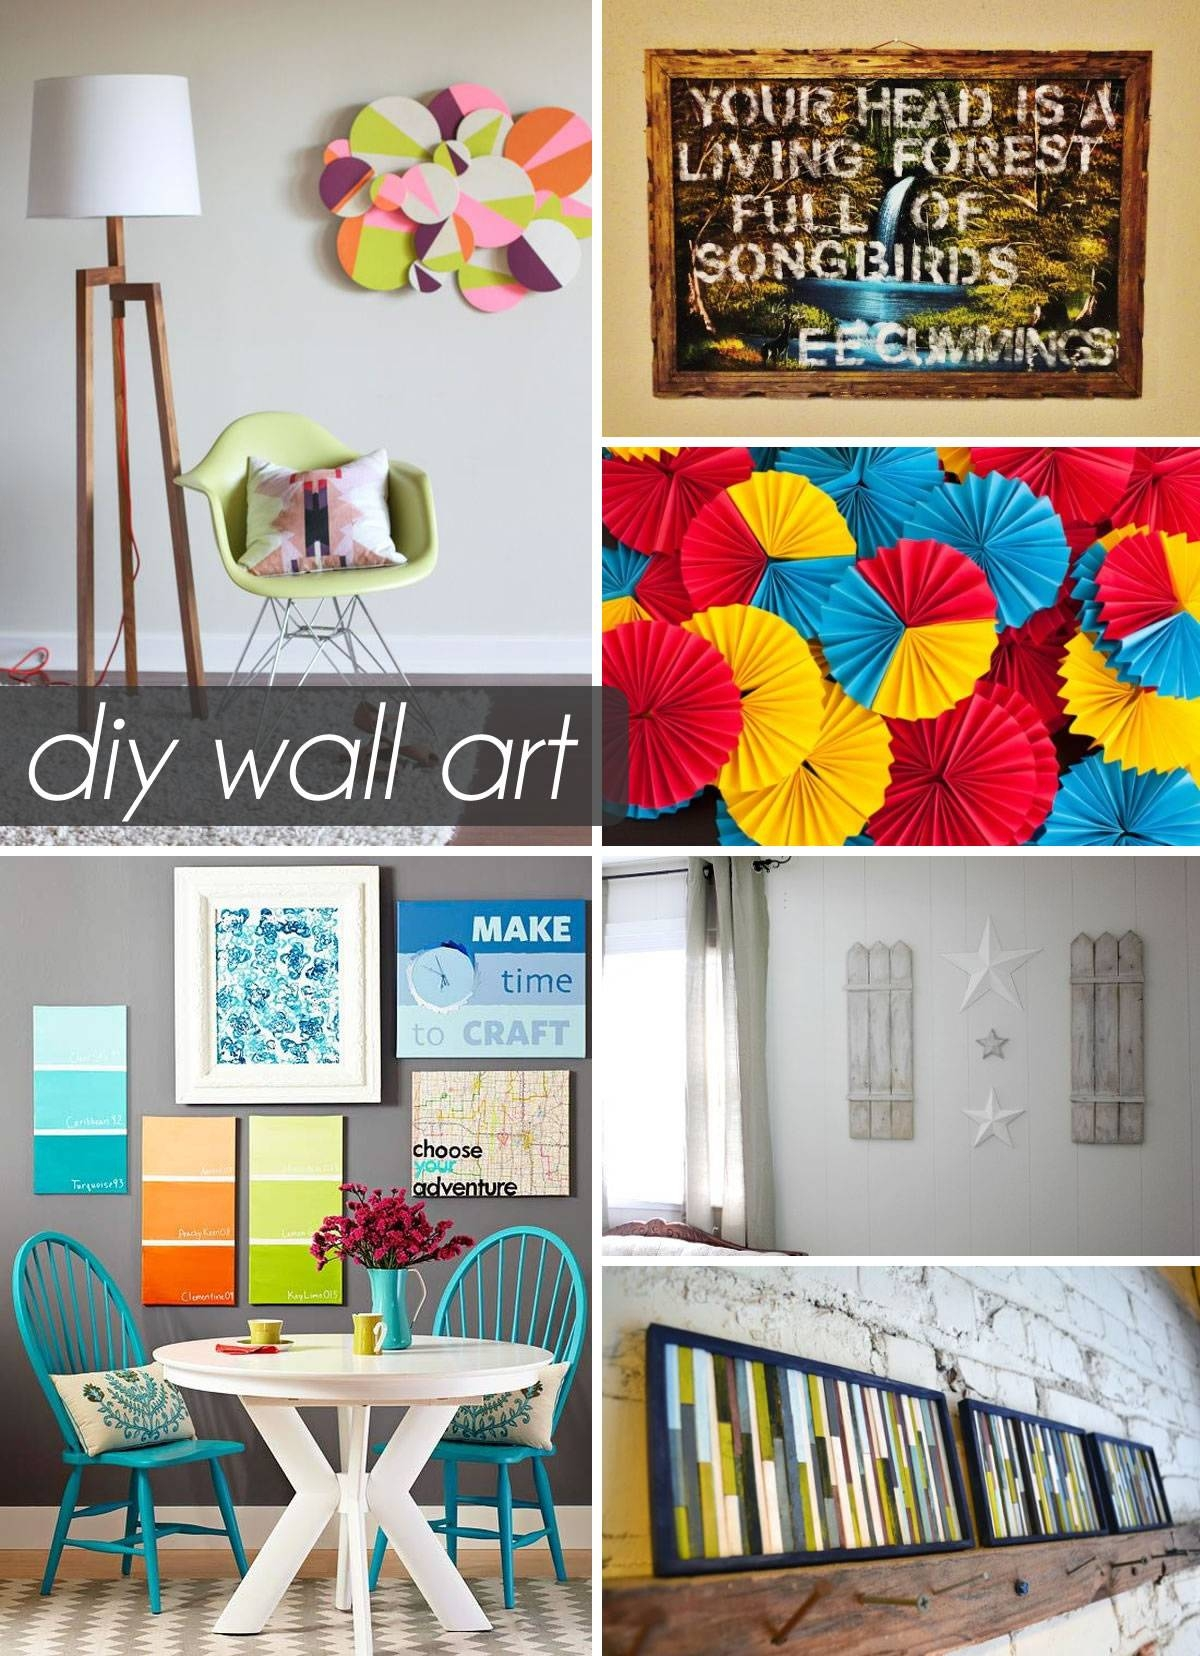 Art: Diy 3D Wall Art Pertaining To Most Up To Date Do It Yourself 3D Wall Art (View 4 of 20)